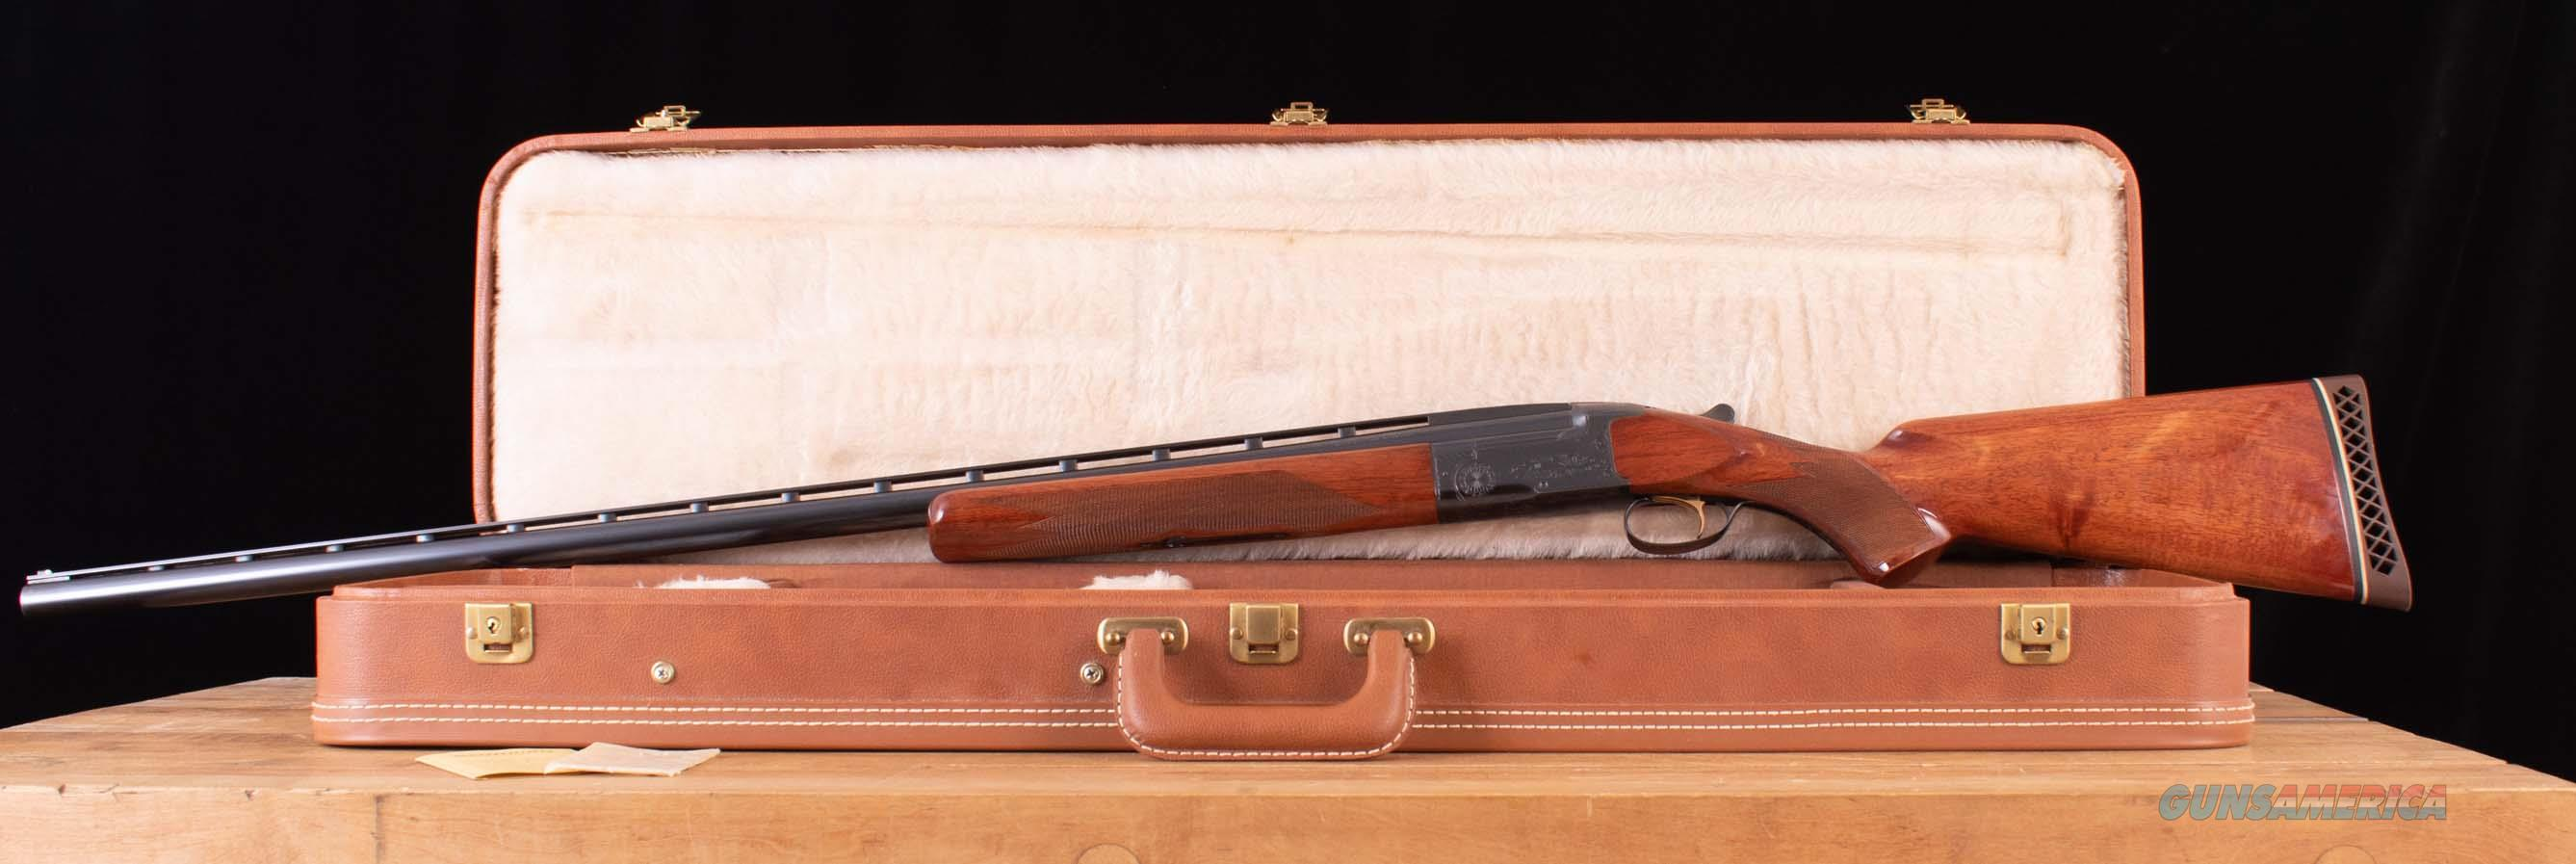 Browning BT-99 12 Gauge – 1968, 99%, FIRST YEAR PRODUCTION, CASED, vintage firearms inc